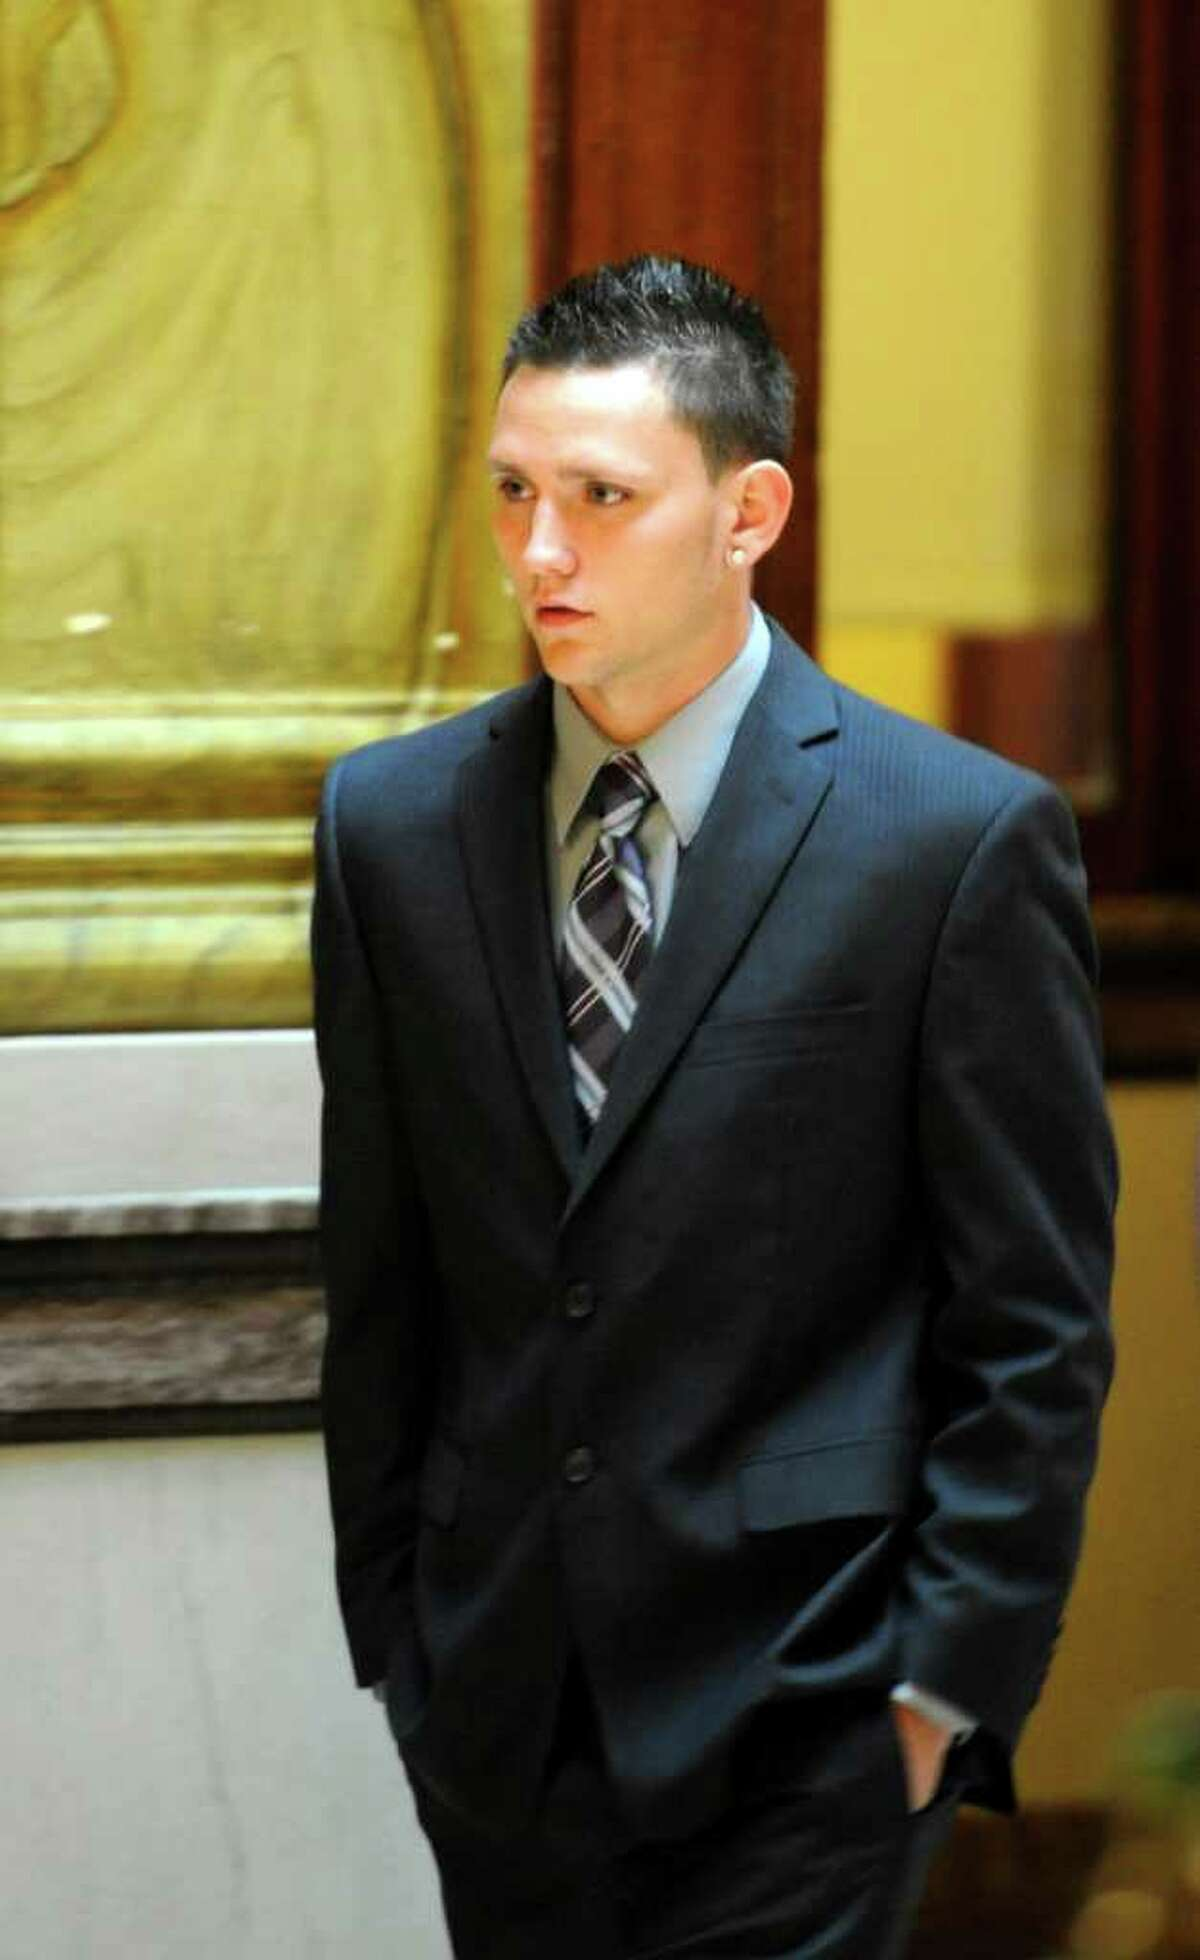 Chad Sandercox, a former Troy High football player, enters the Rensselaer County Courthouse in Troy, N.Y. October 17, 2011. (Skip Dickstein / Times Union archive)